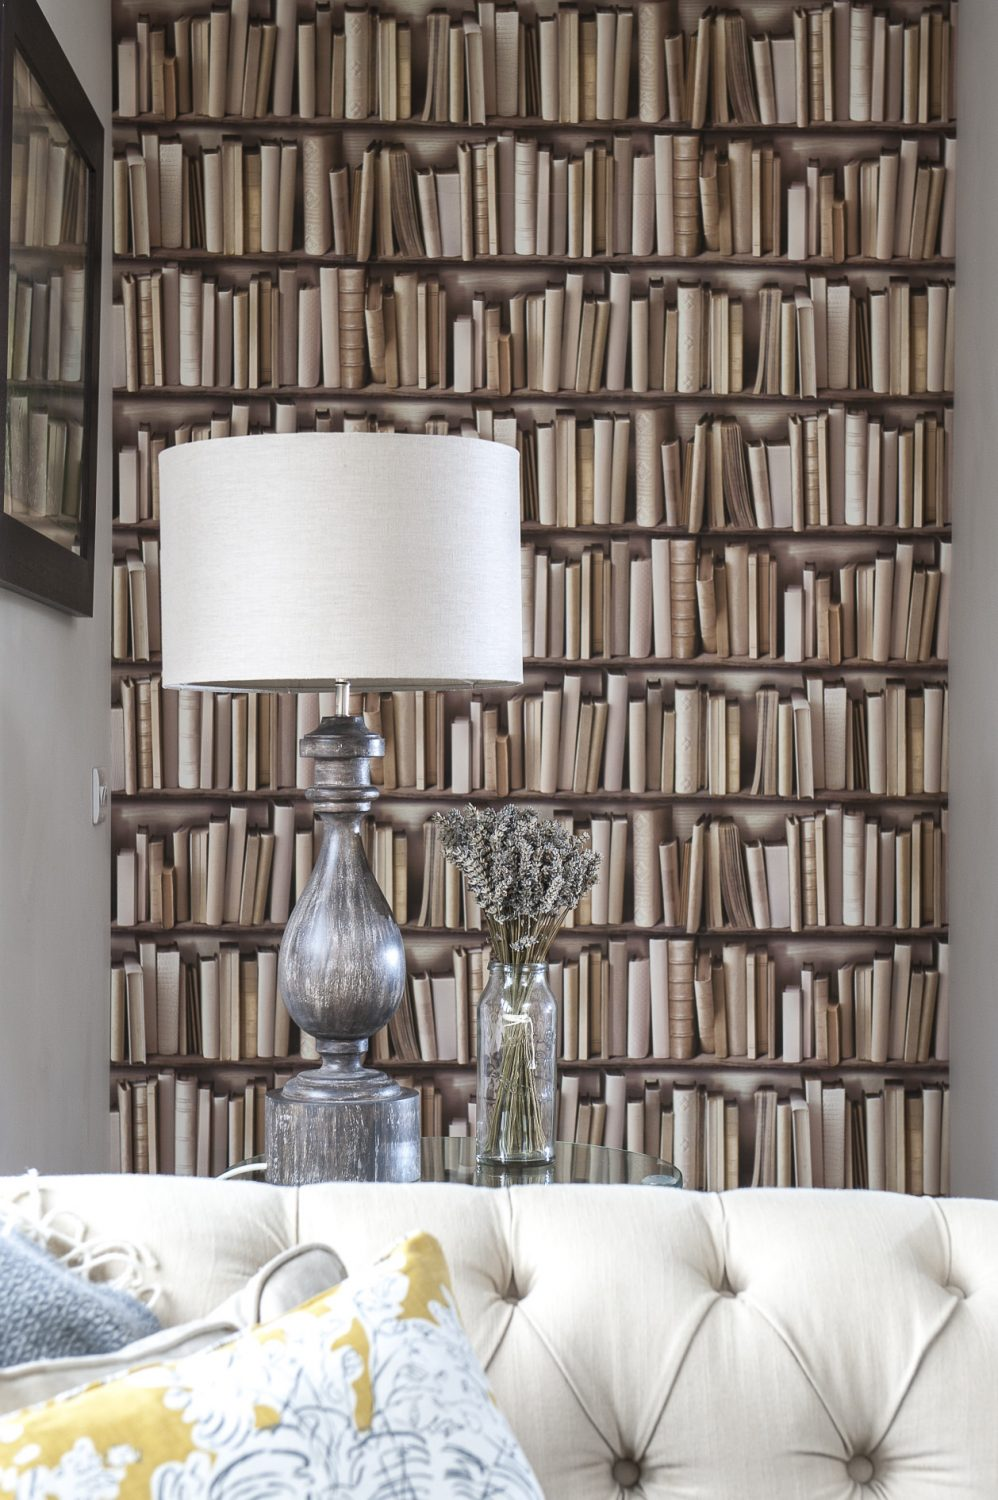 Trompe l'oeil wallpaper depicting a bookcase hides a secret door which leads through to a less formal living room and children's play area